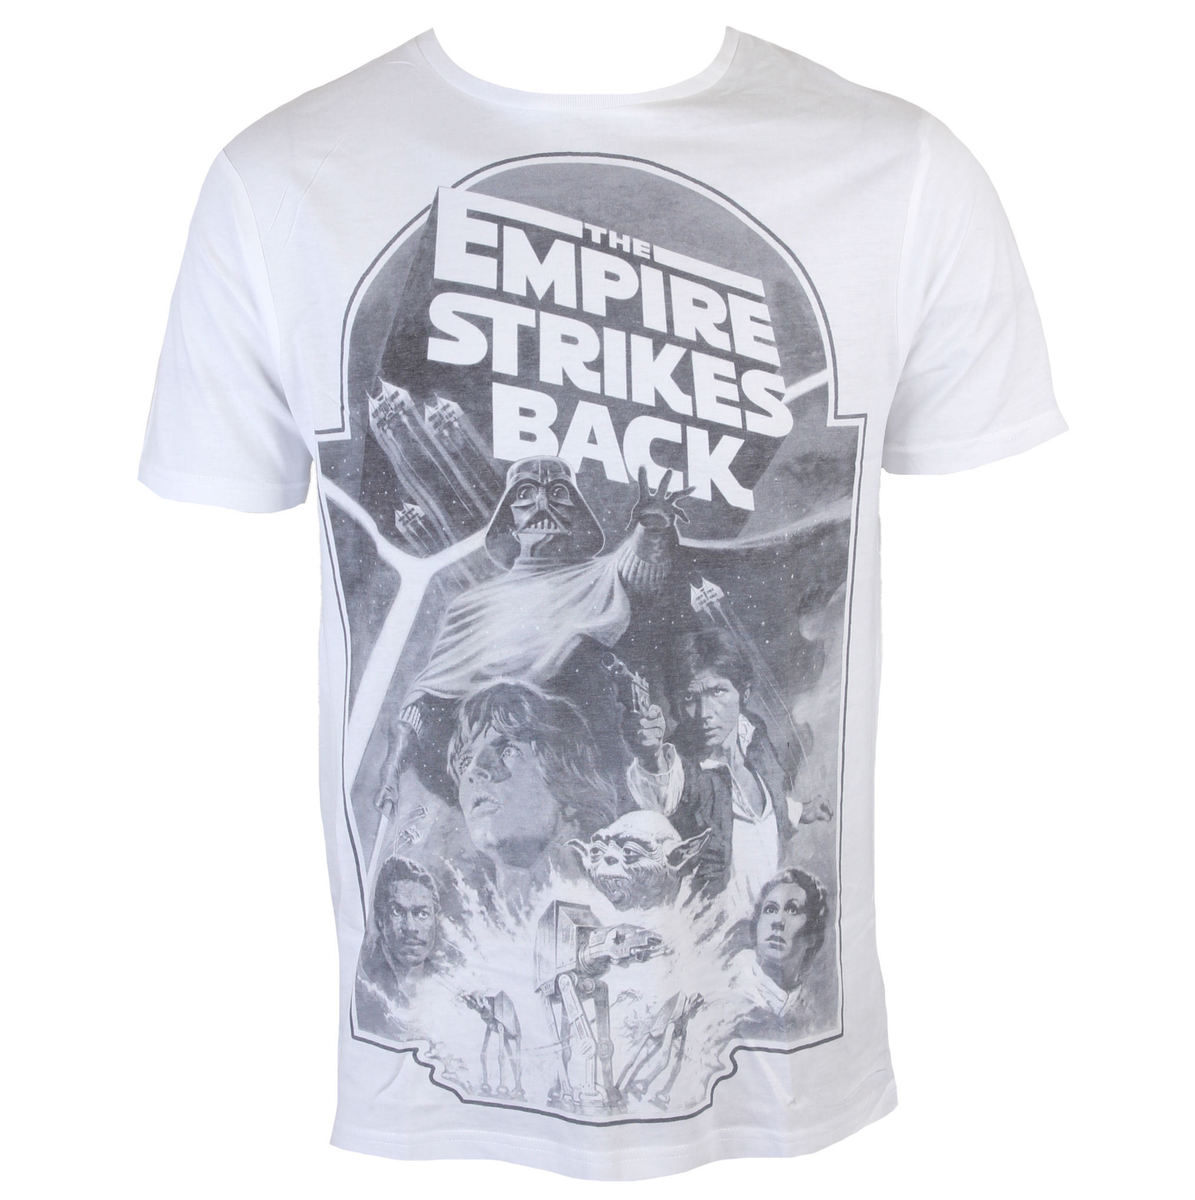 INDIEGO Star Wars Empire Strikes Back Sublimation šedá bílá